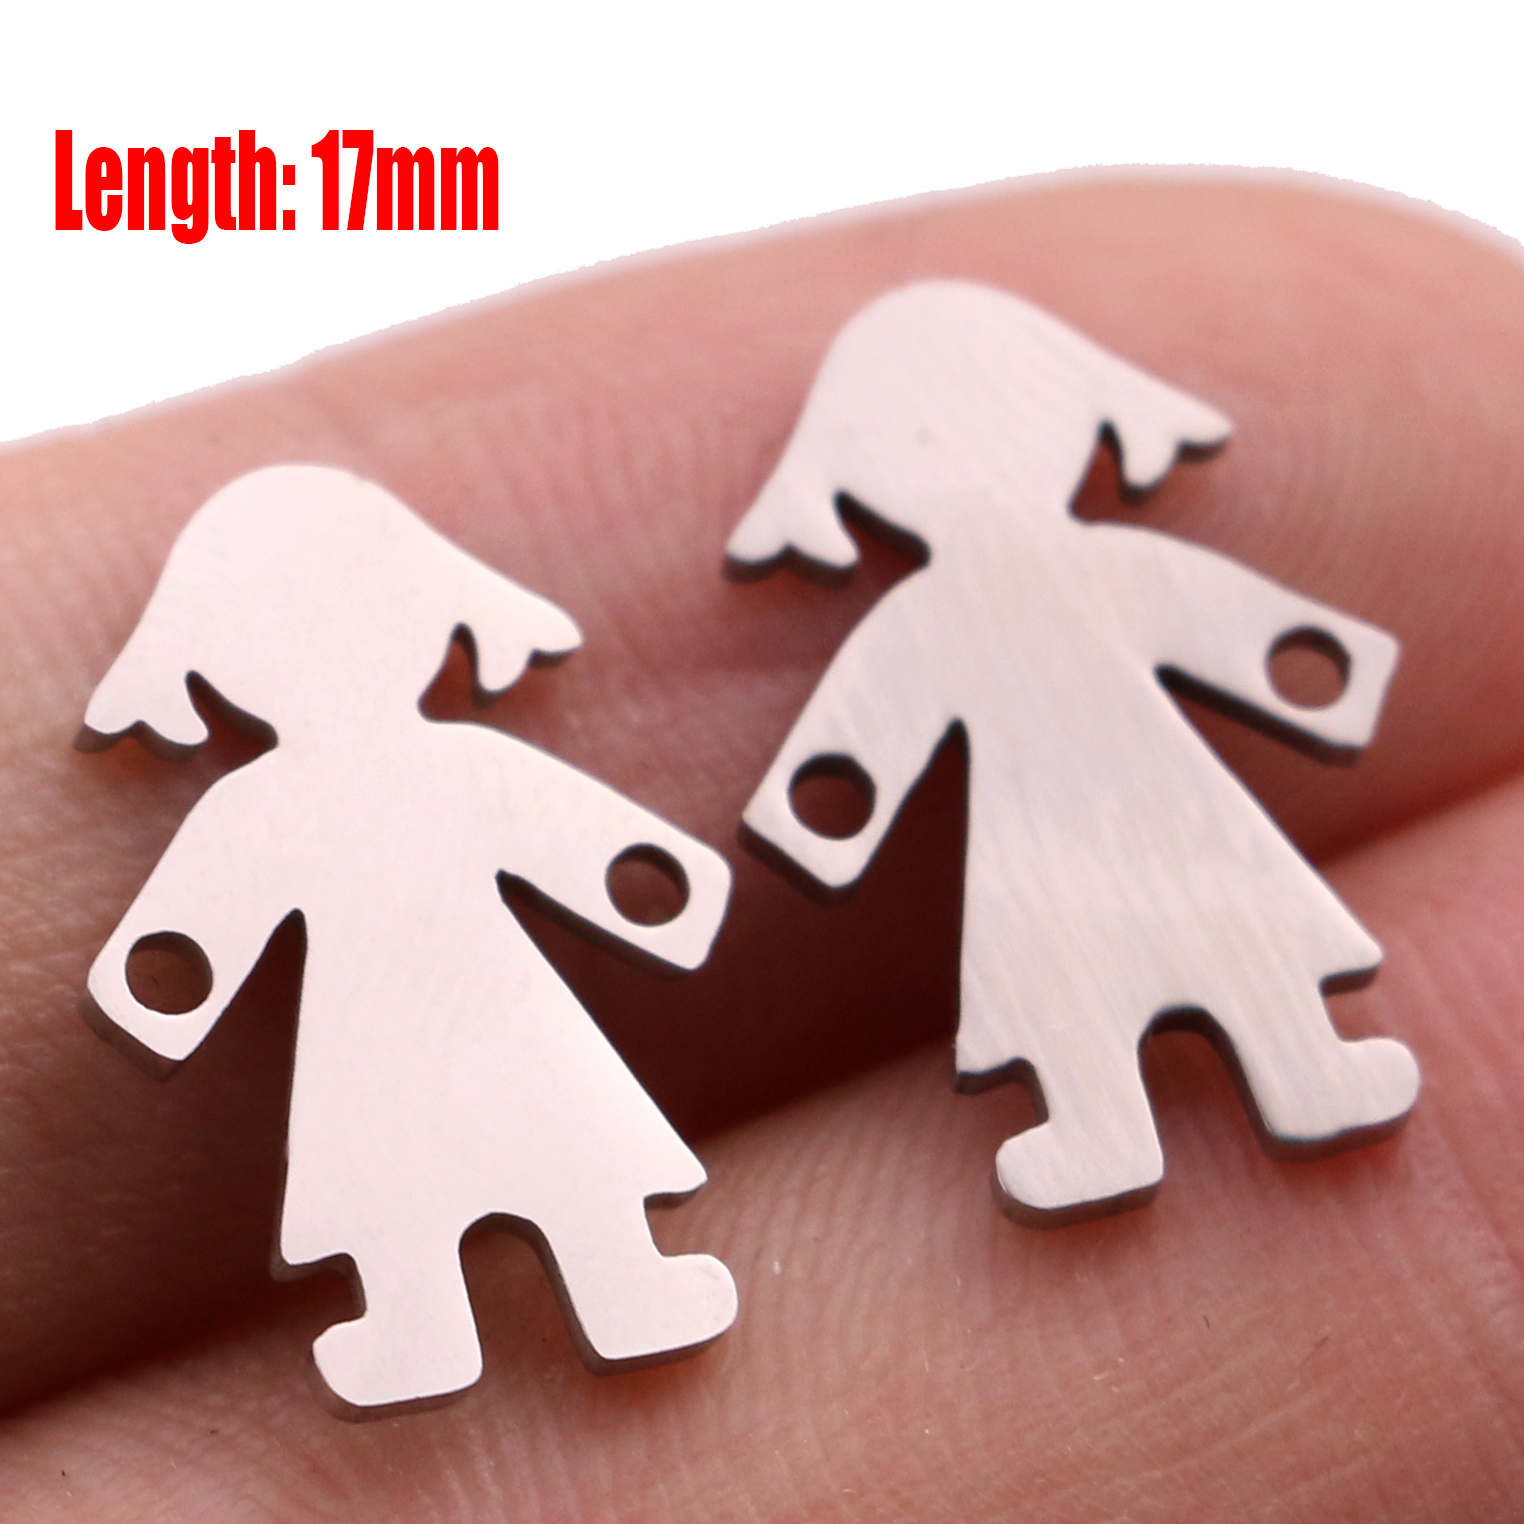 5pcs Family Chain Stainless Steel Pendant Necklace Parents and Children Necklaces Gold/steel Jewelry Gift for Mom Dad New Twice - Цвет: Steel 16